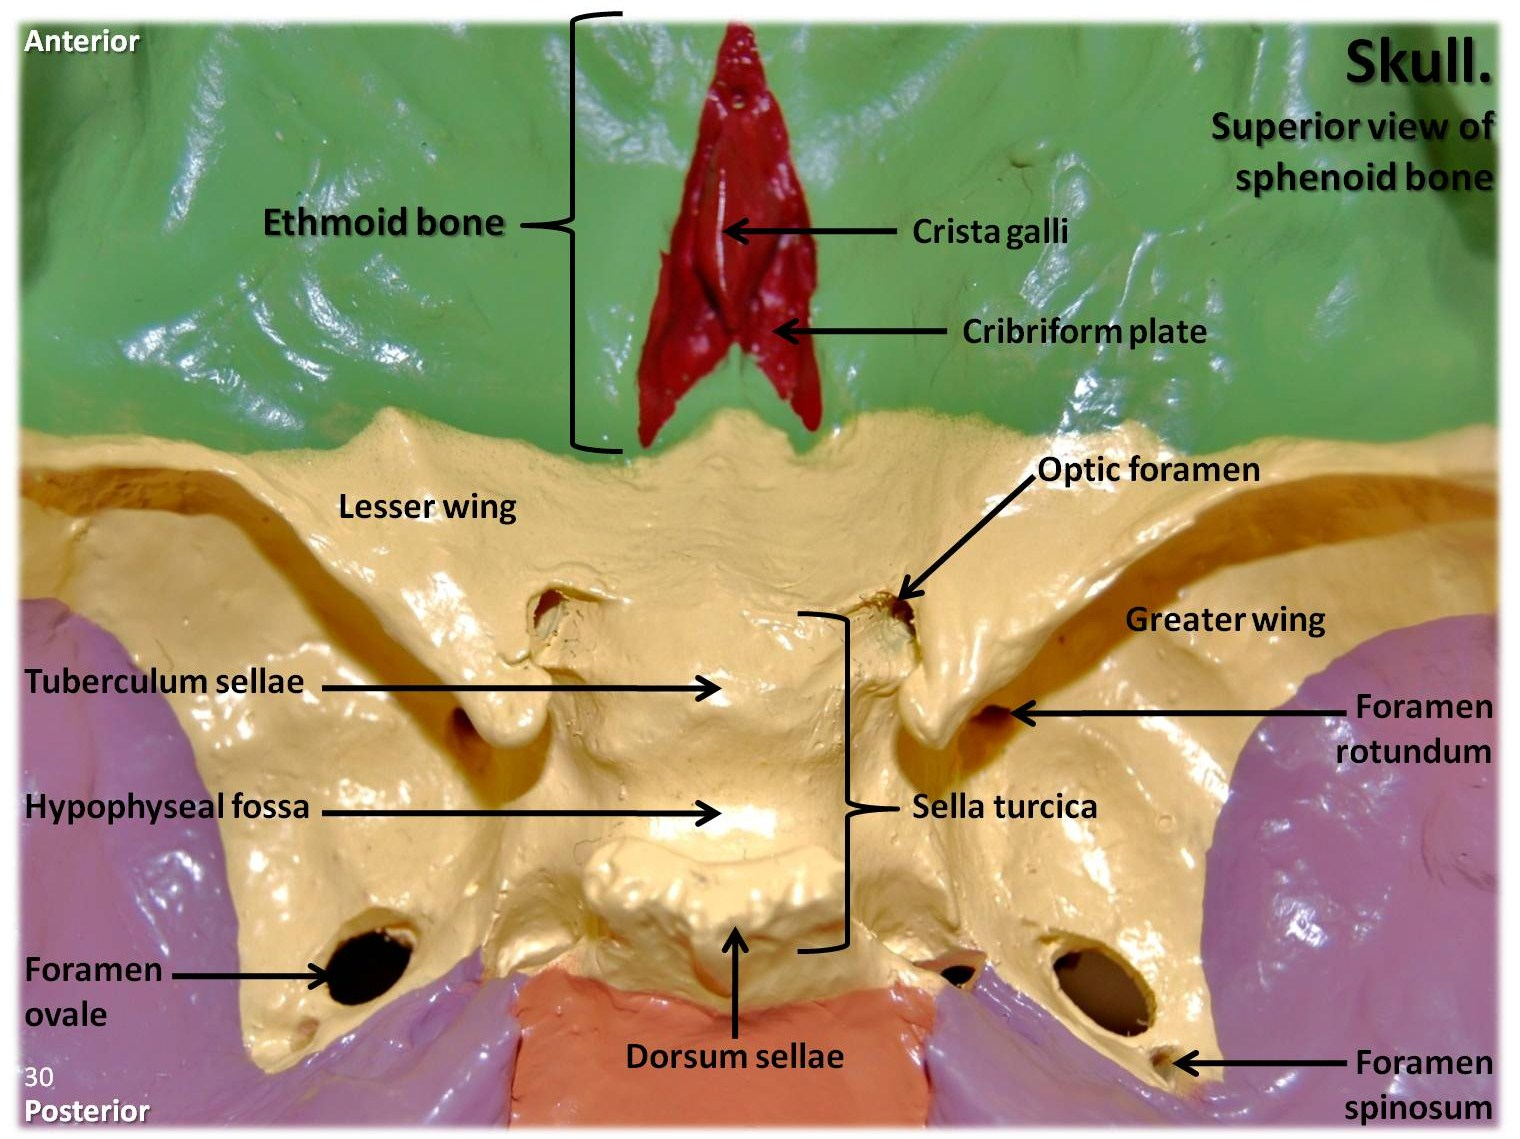 ethmoid bone diagram sea doo jet ski parts multi colored skull superior view of and sphenoid